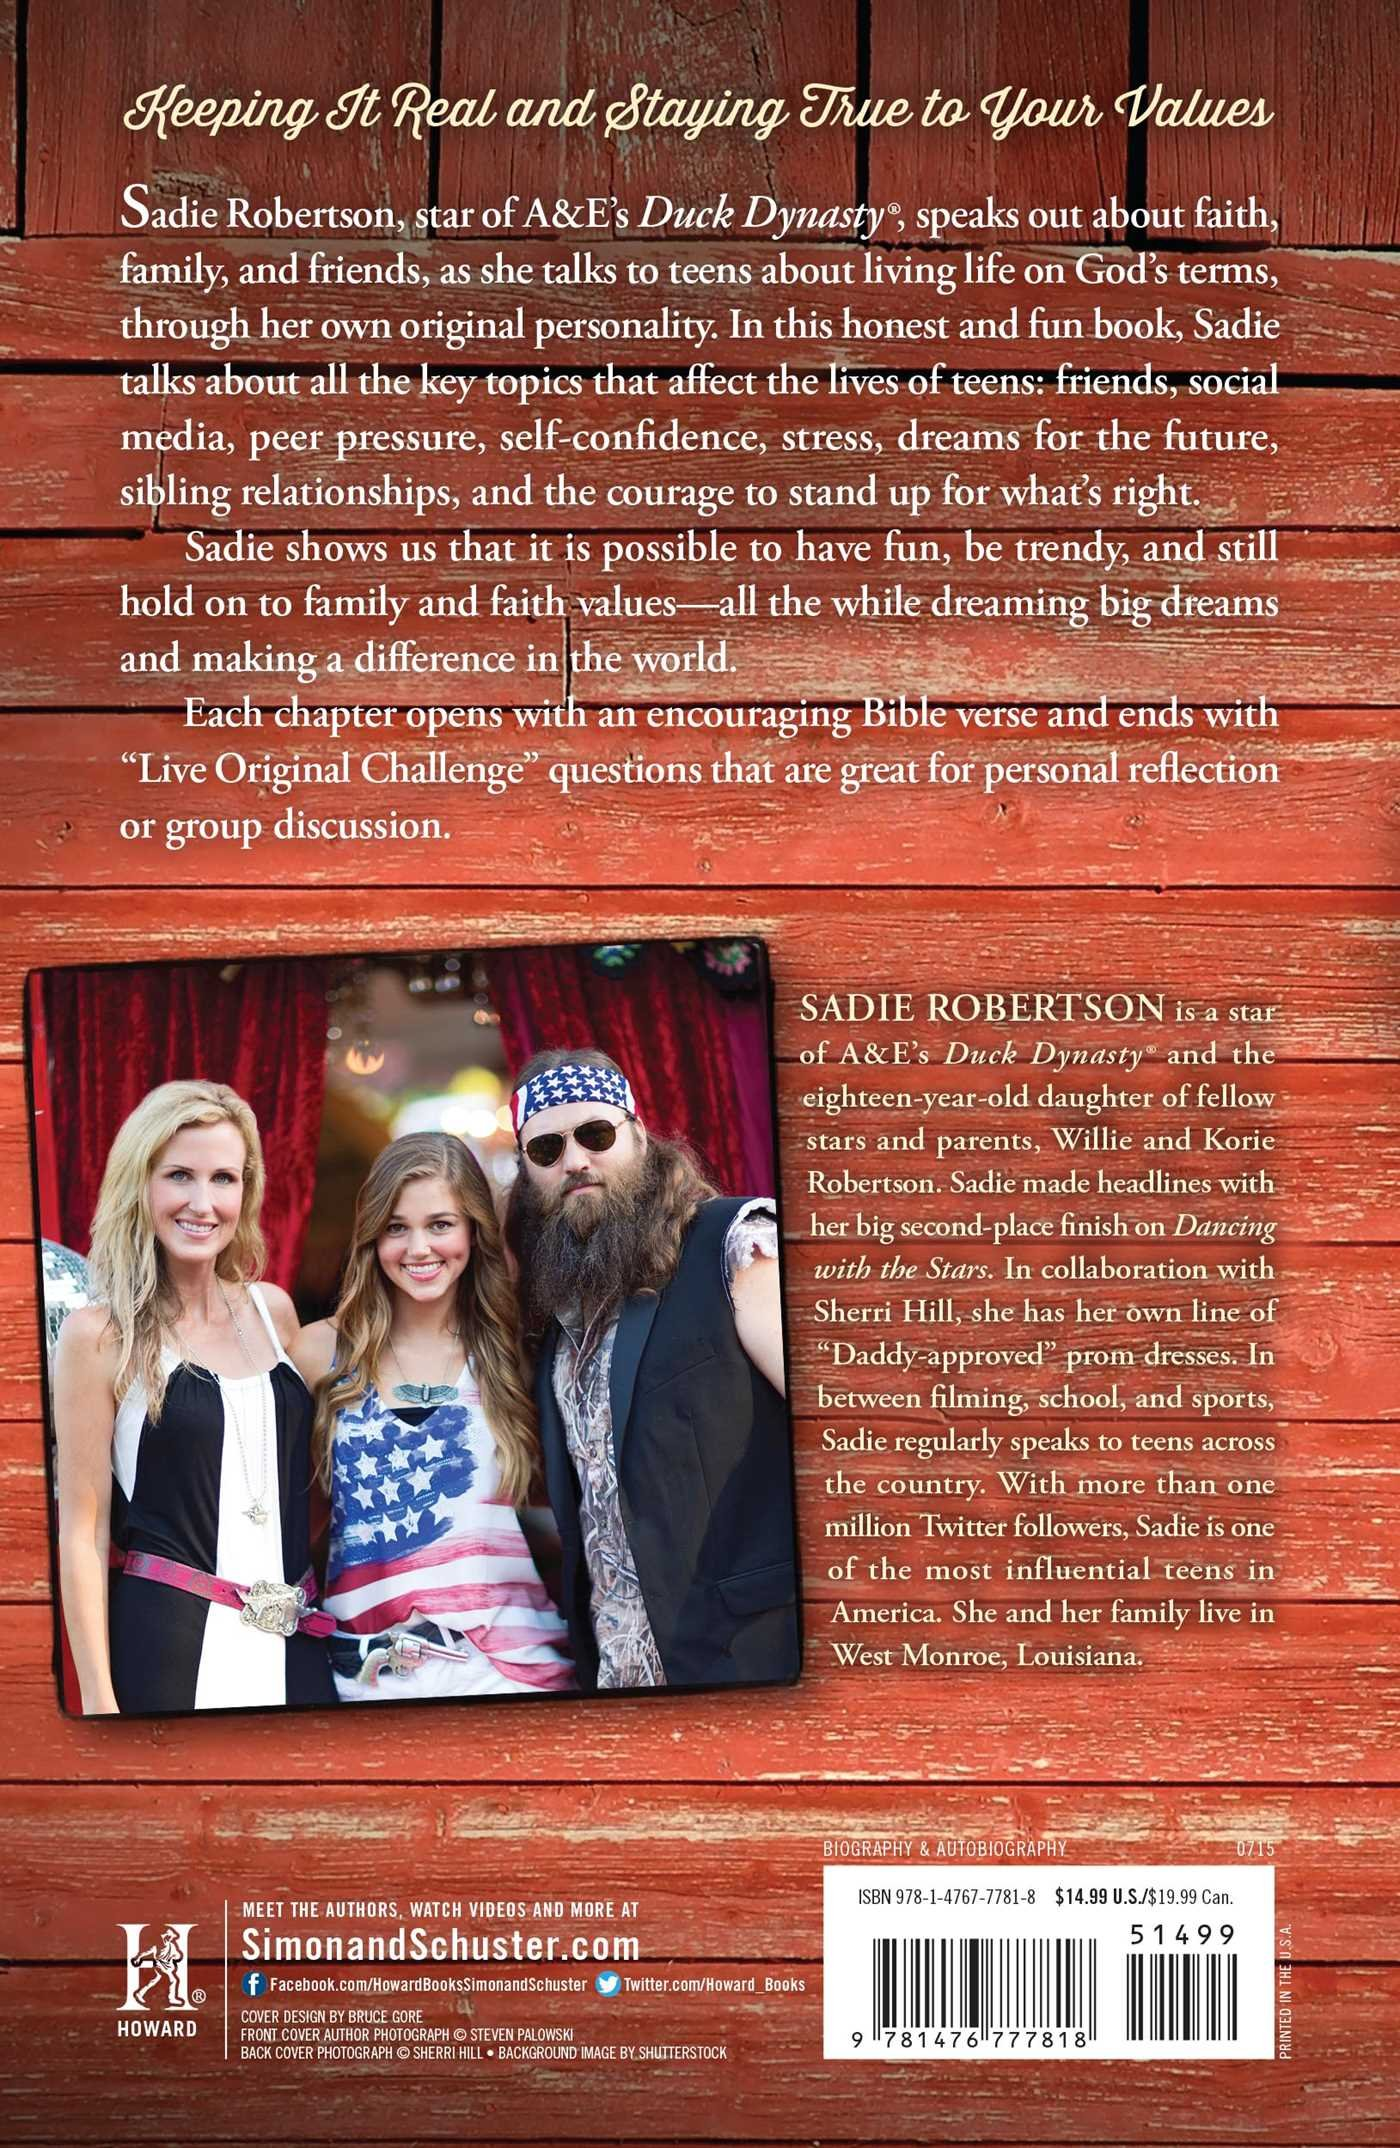 Live Original: How the Duck Commander Teen Keeps It Real and Stays True to Her Values: Amazon.co.uk: Sadie Robertson, Beth Clark: 8601422216622: Books